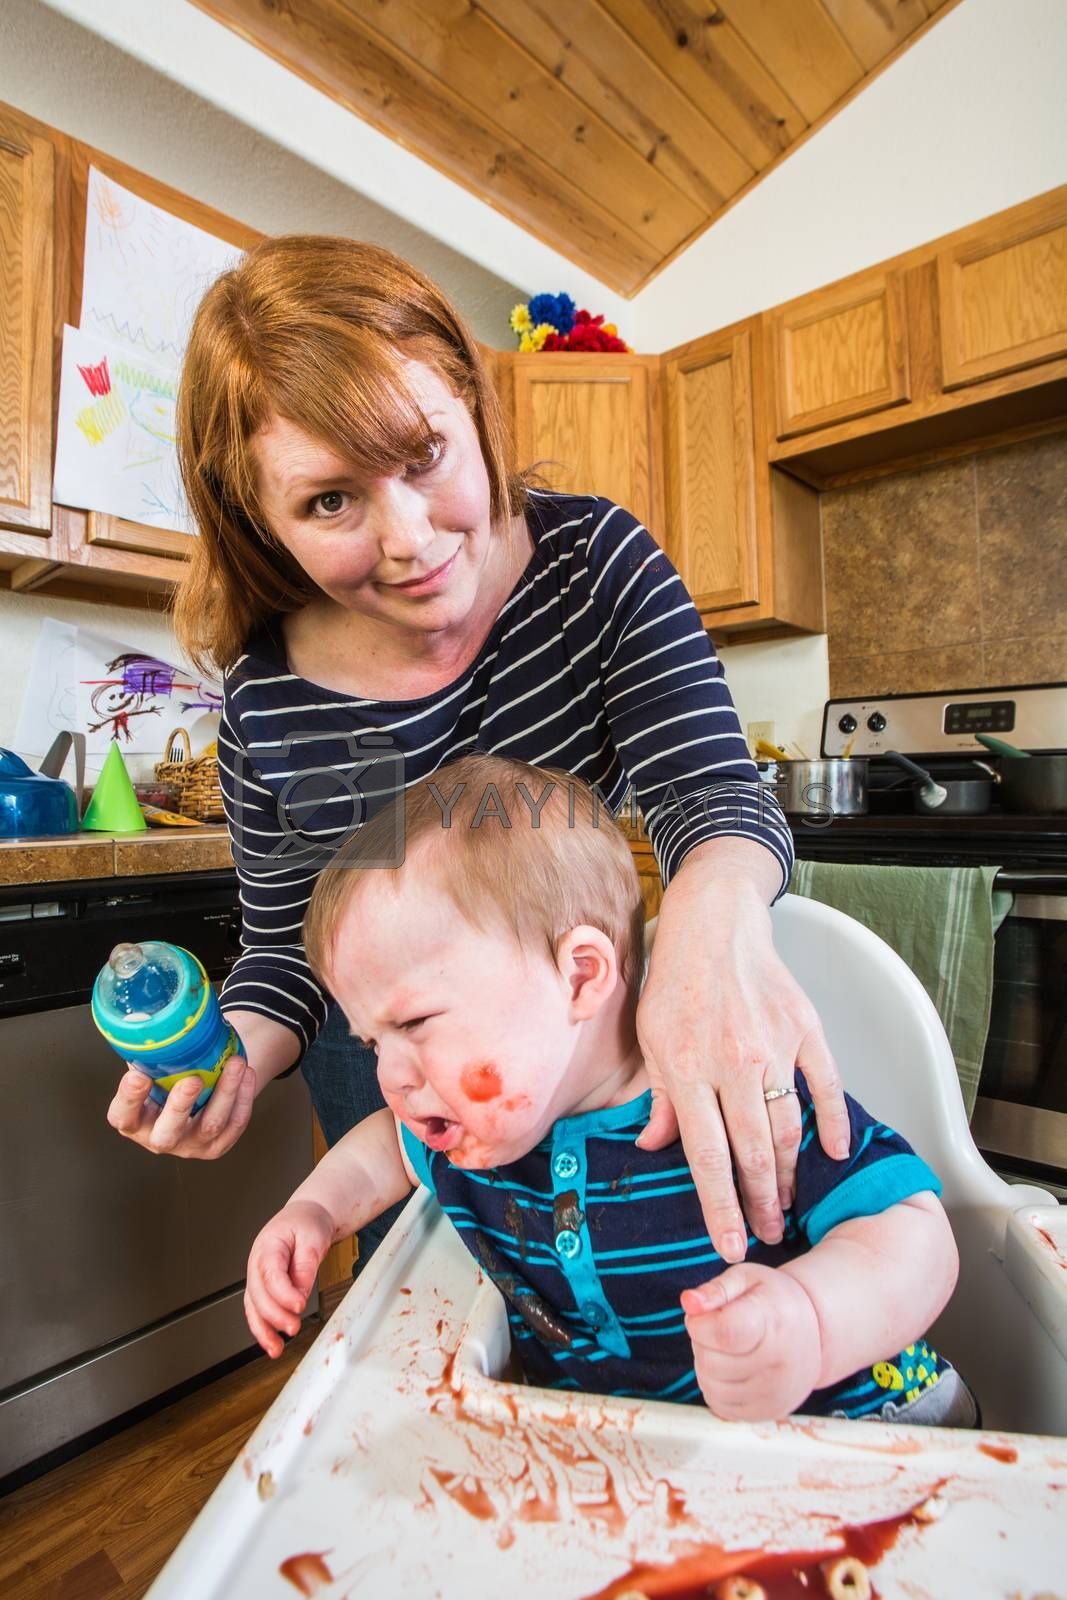 Royalty free image of Woman Feeds Her Gumpy Baby by Creatista